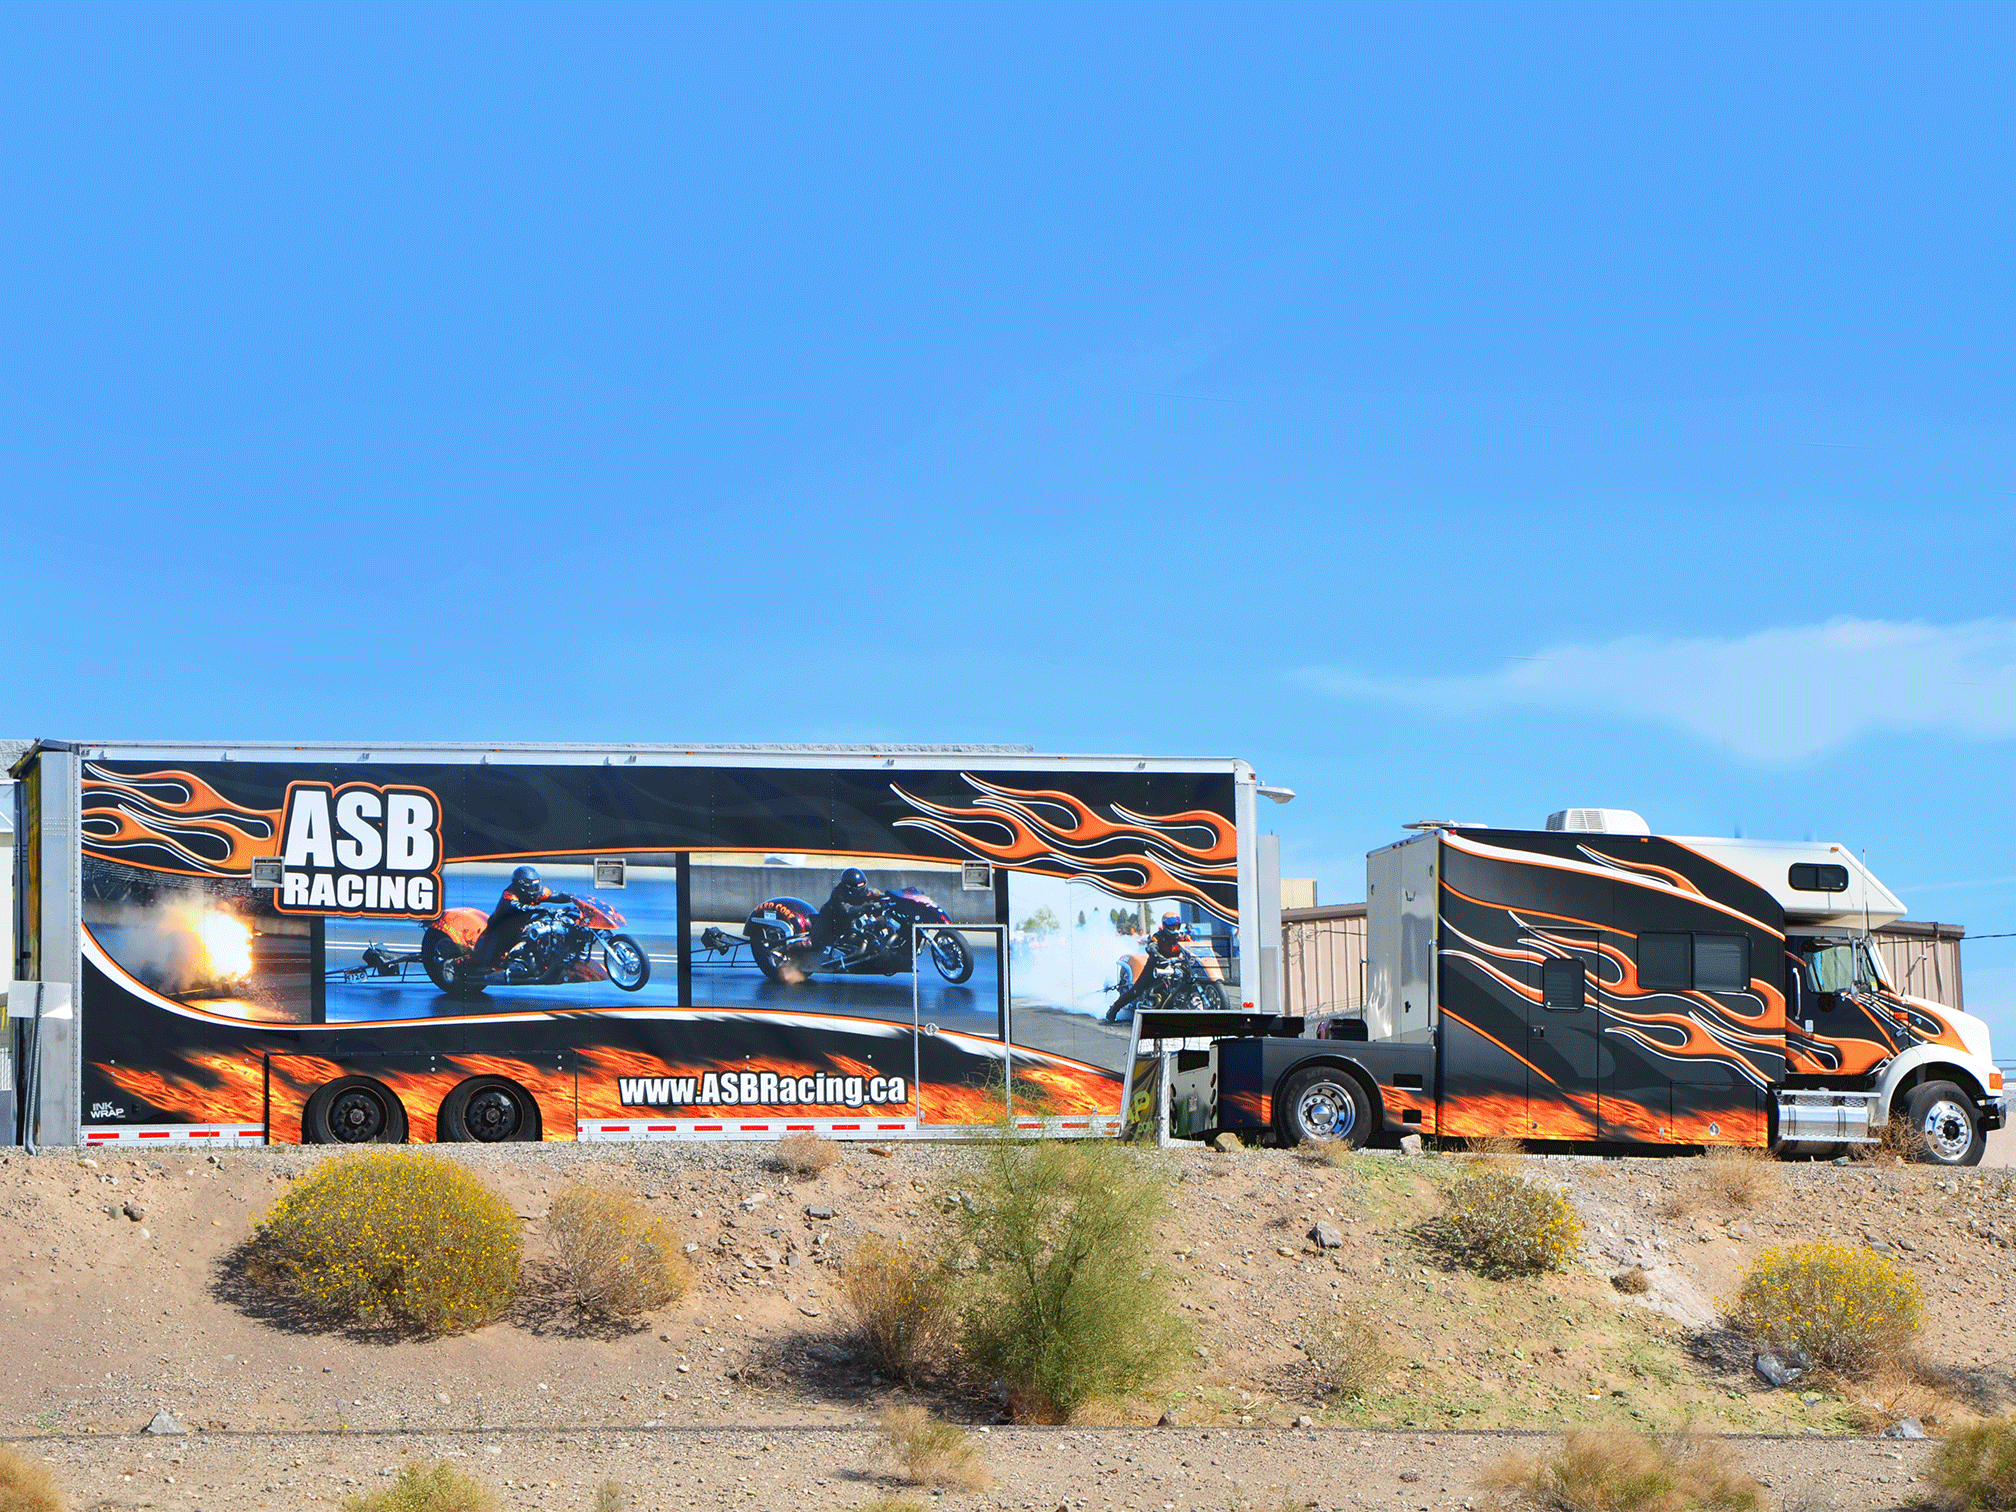 ASB Racing Diesel and Trailer XXL Wrap